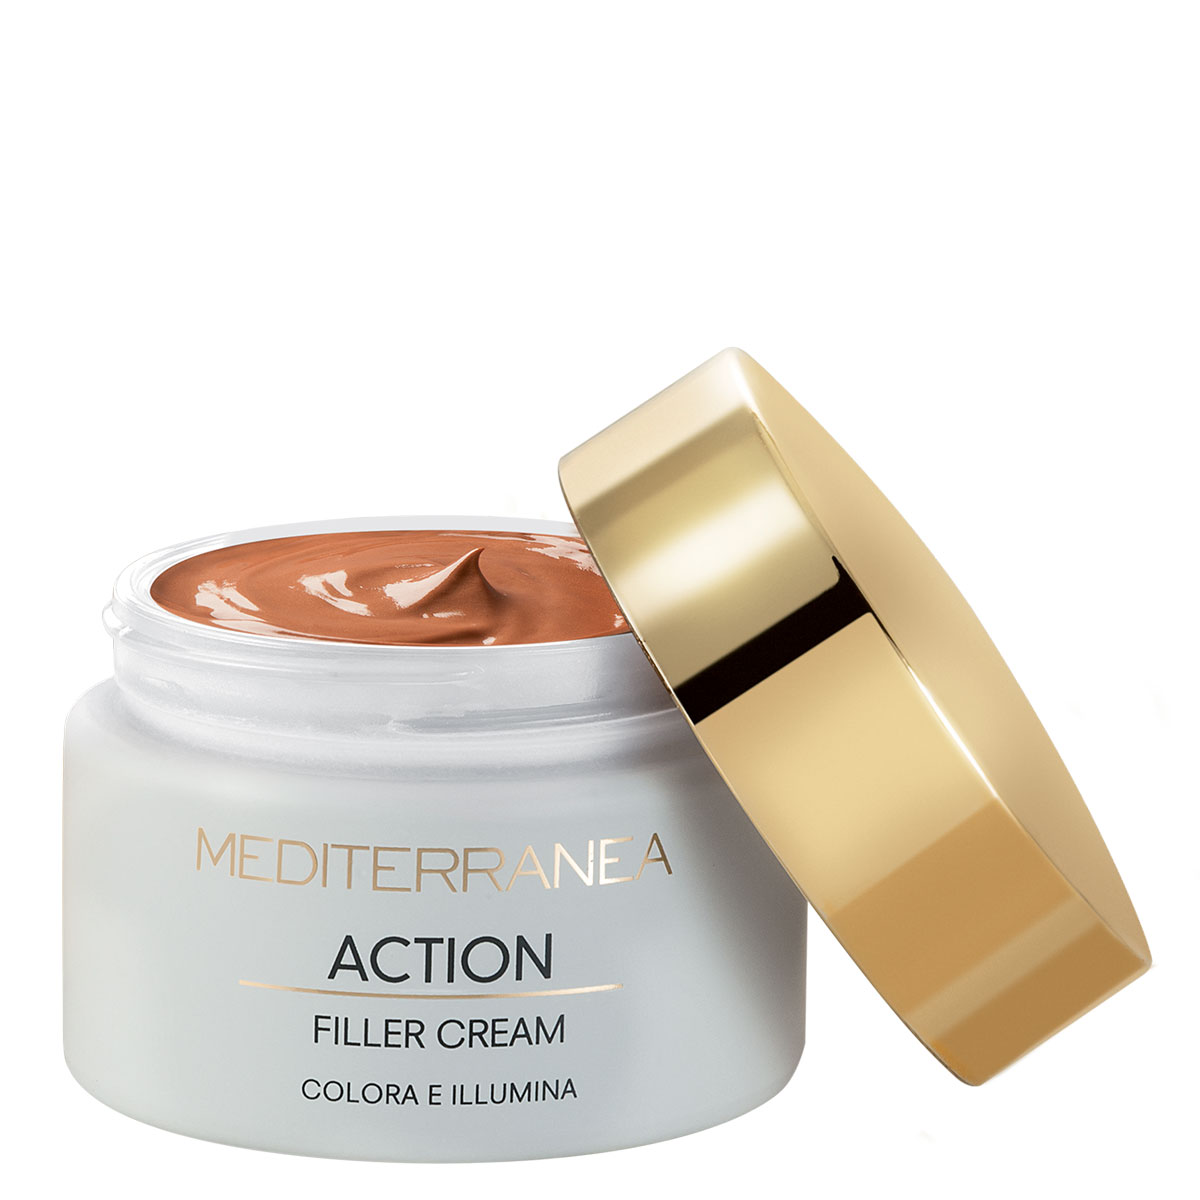 ACTION FILLER CREAM